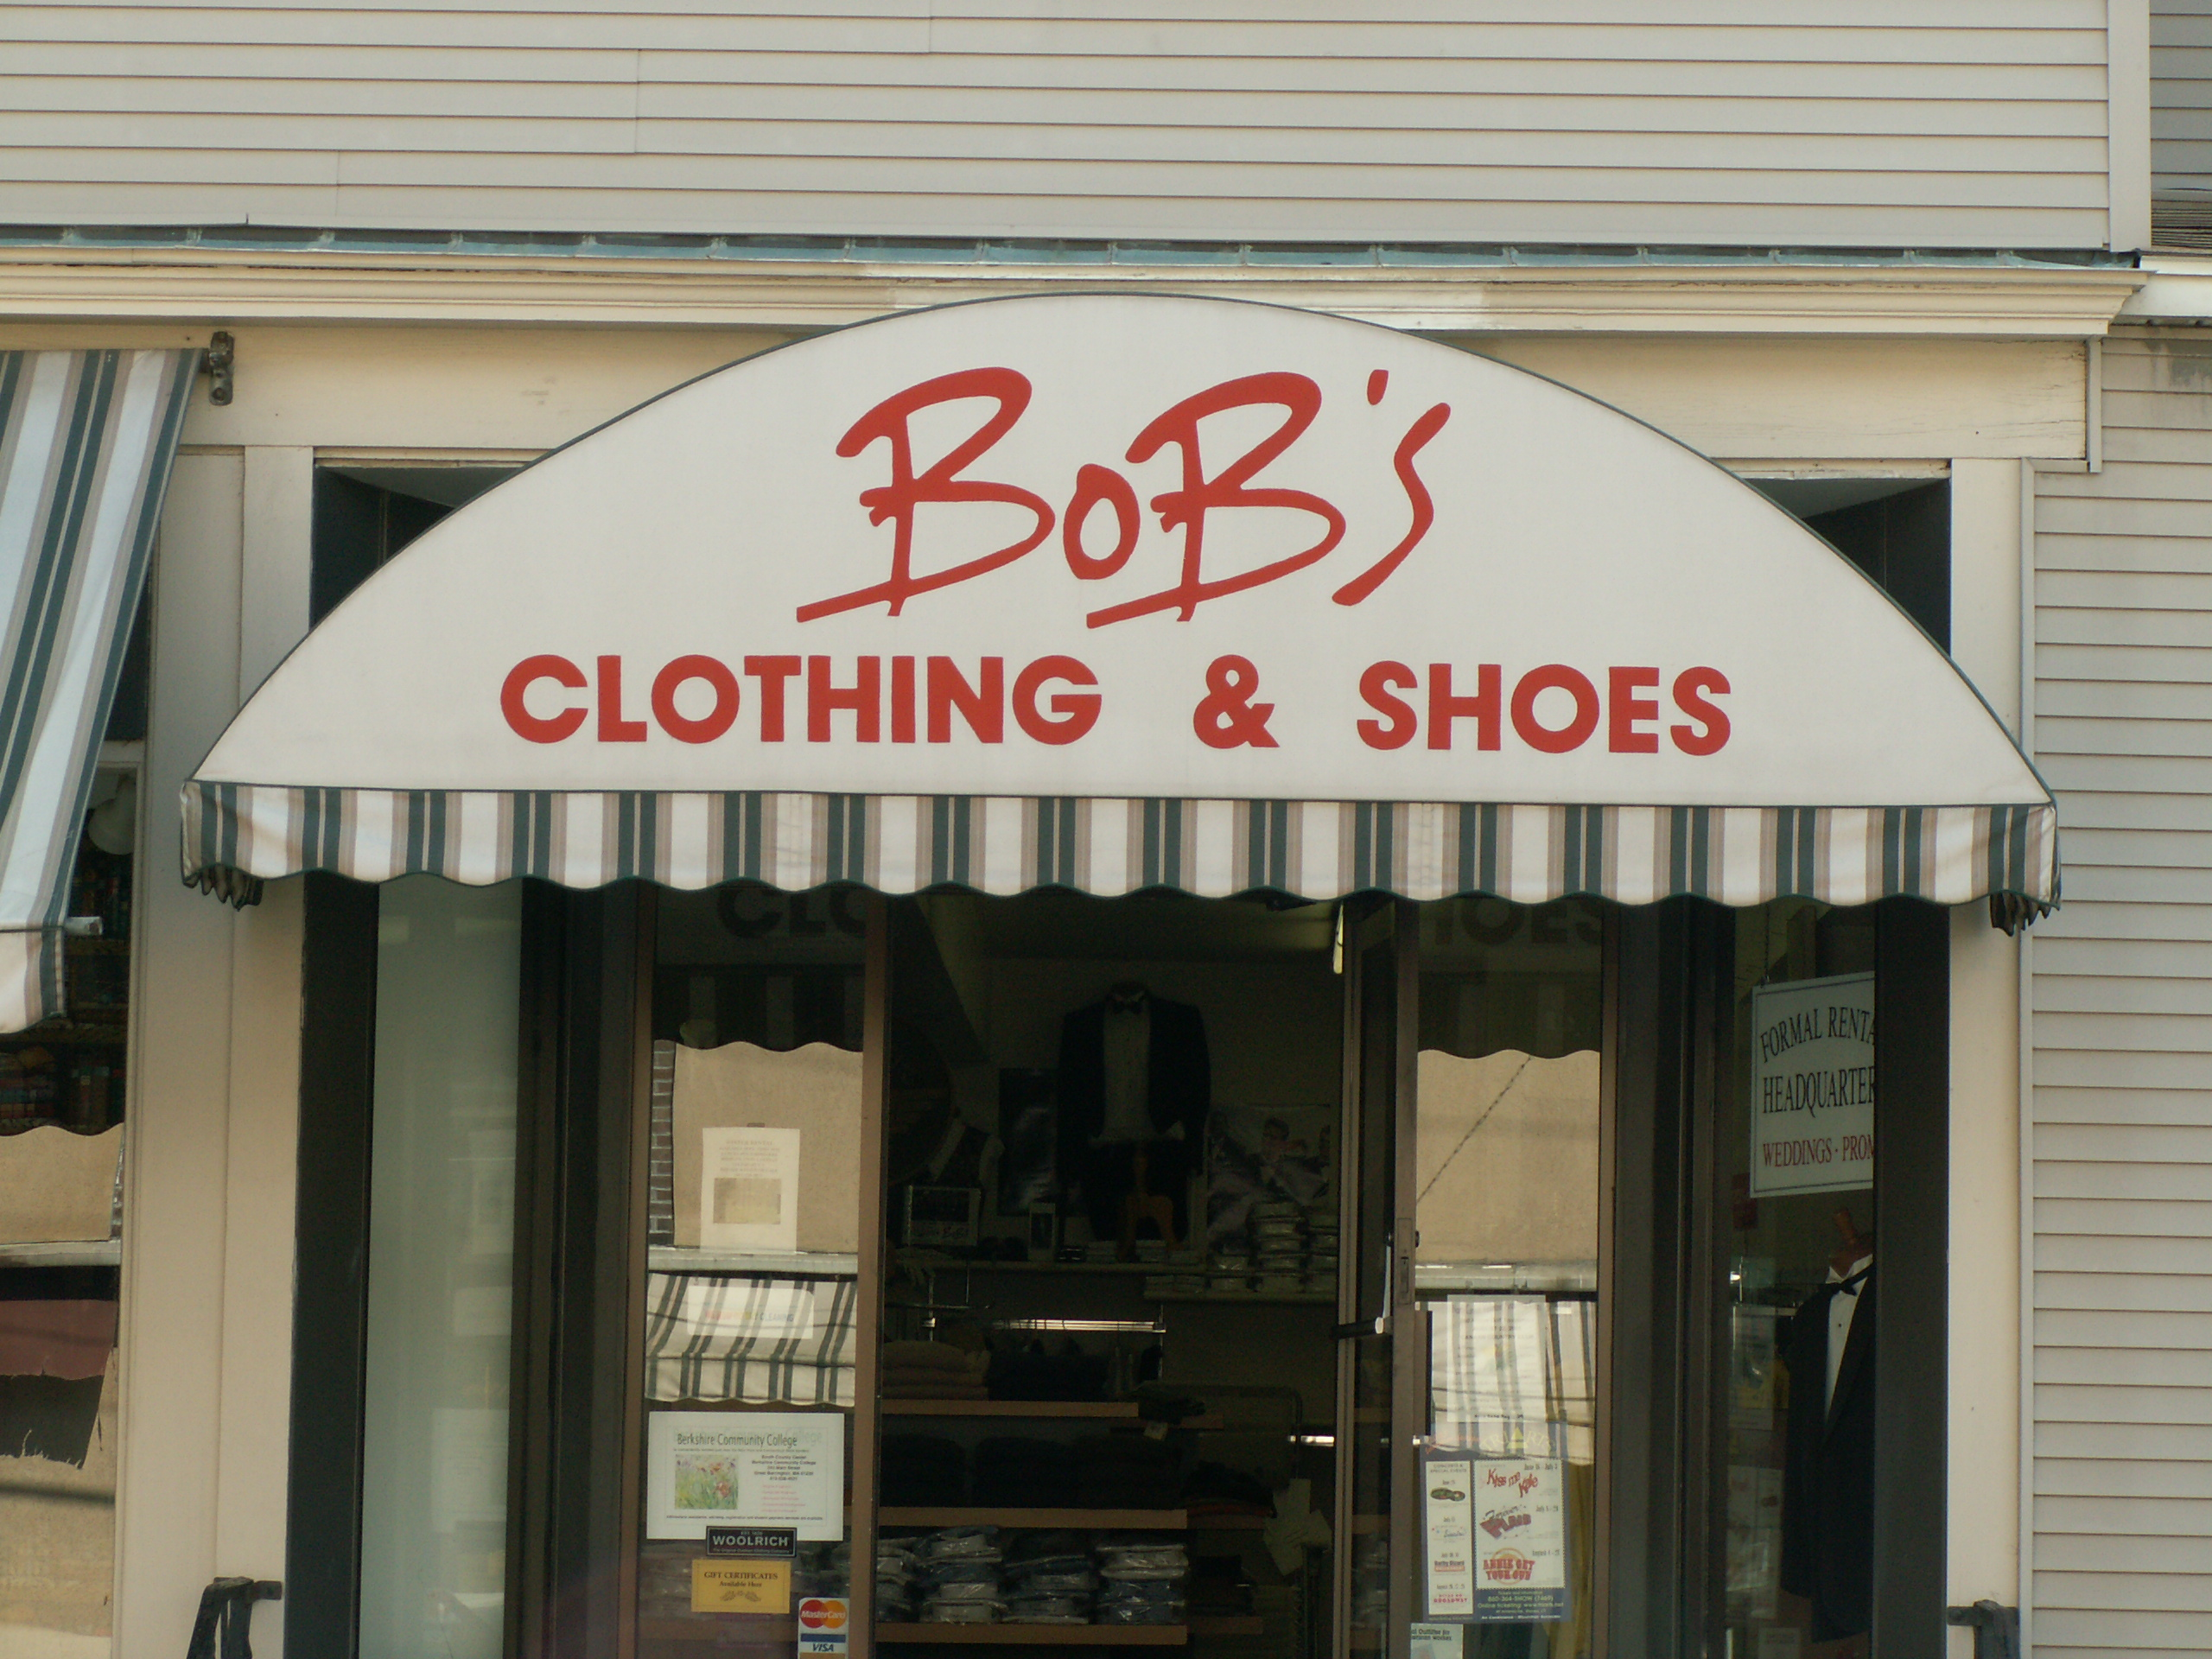 Women clothing stores Bobs clothing store